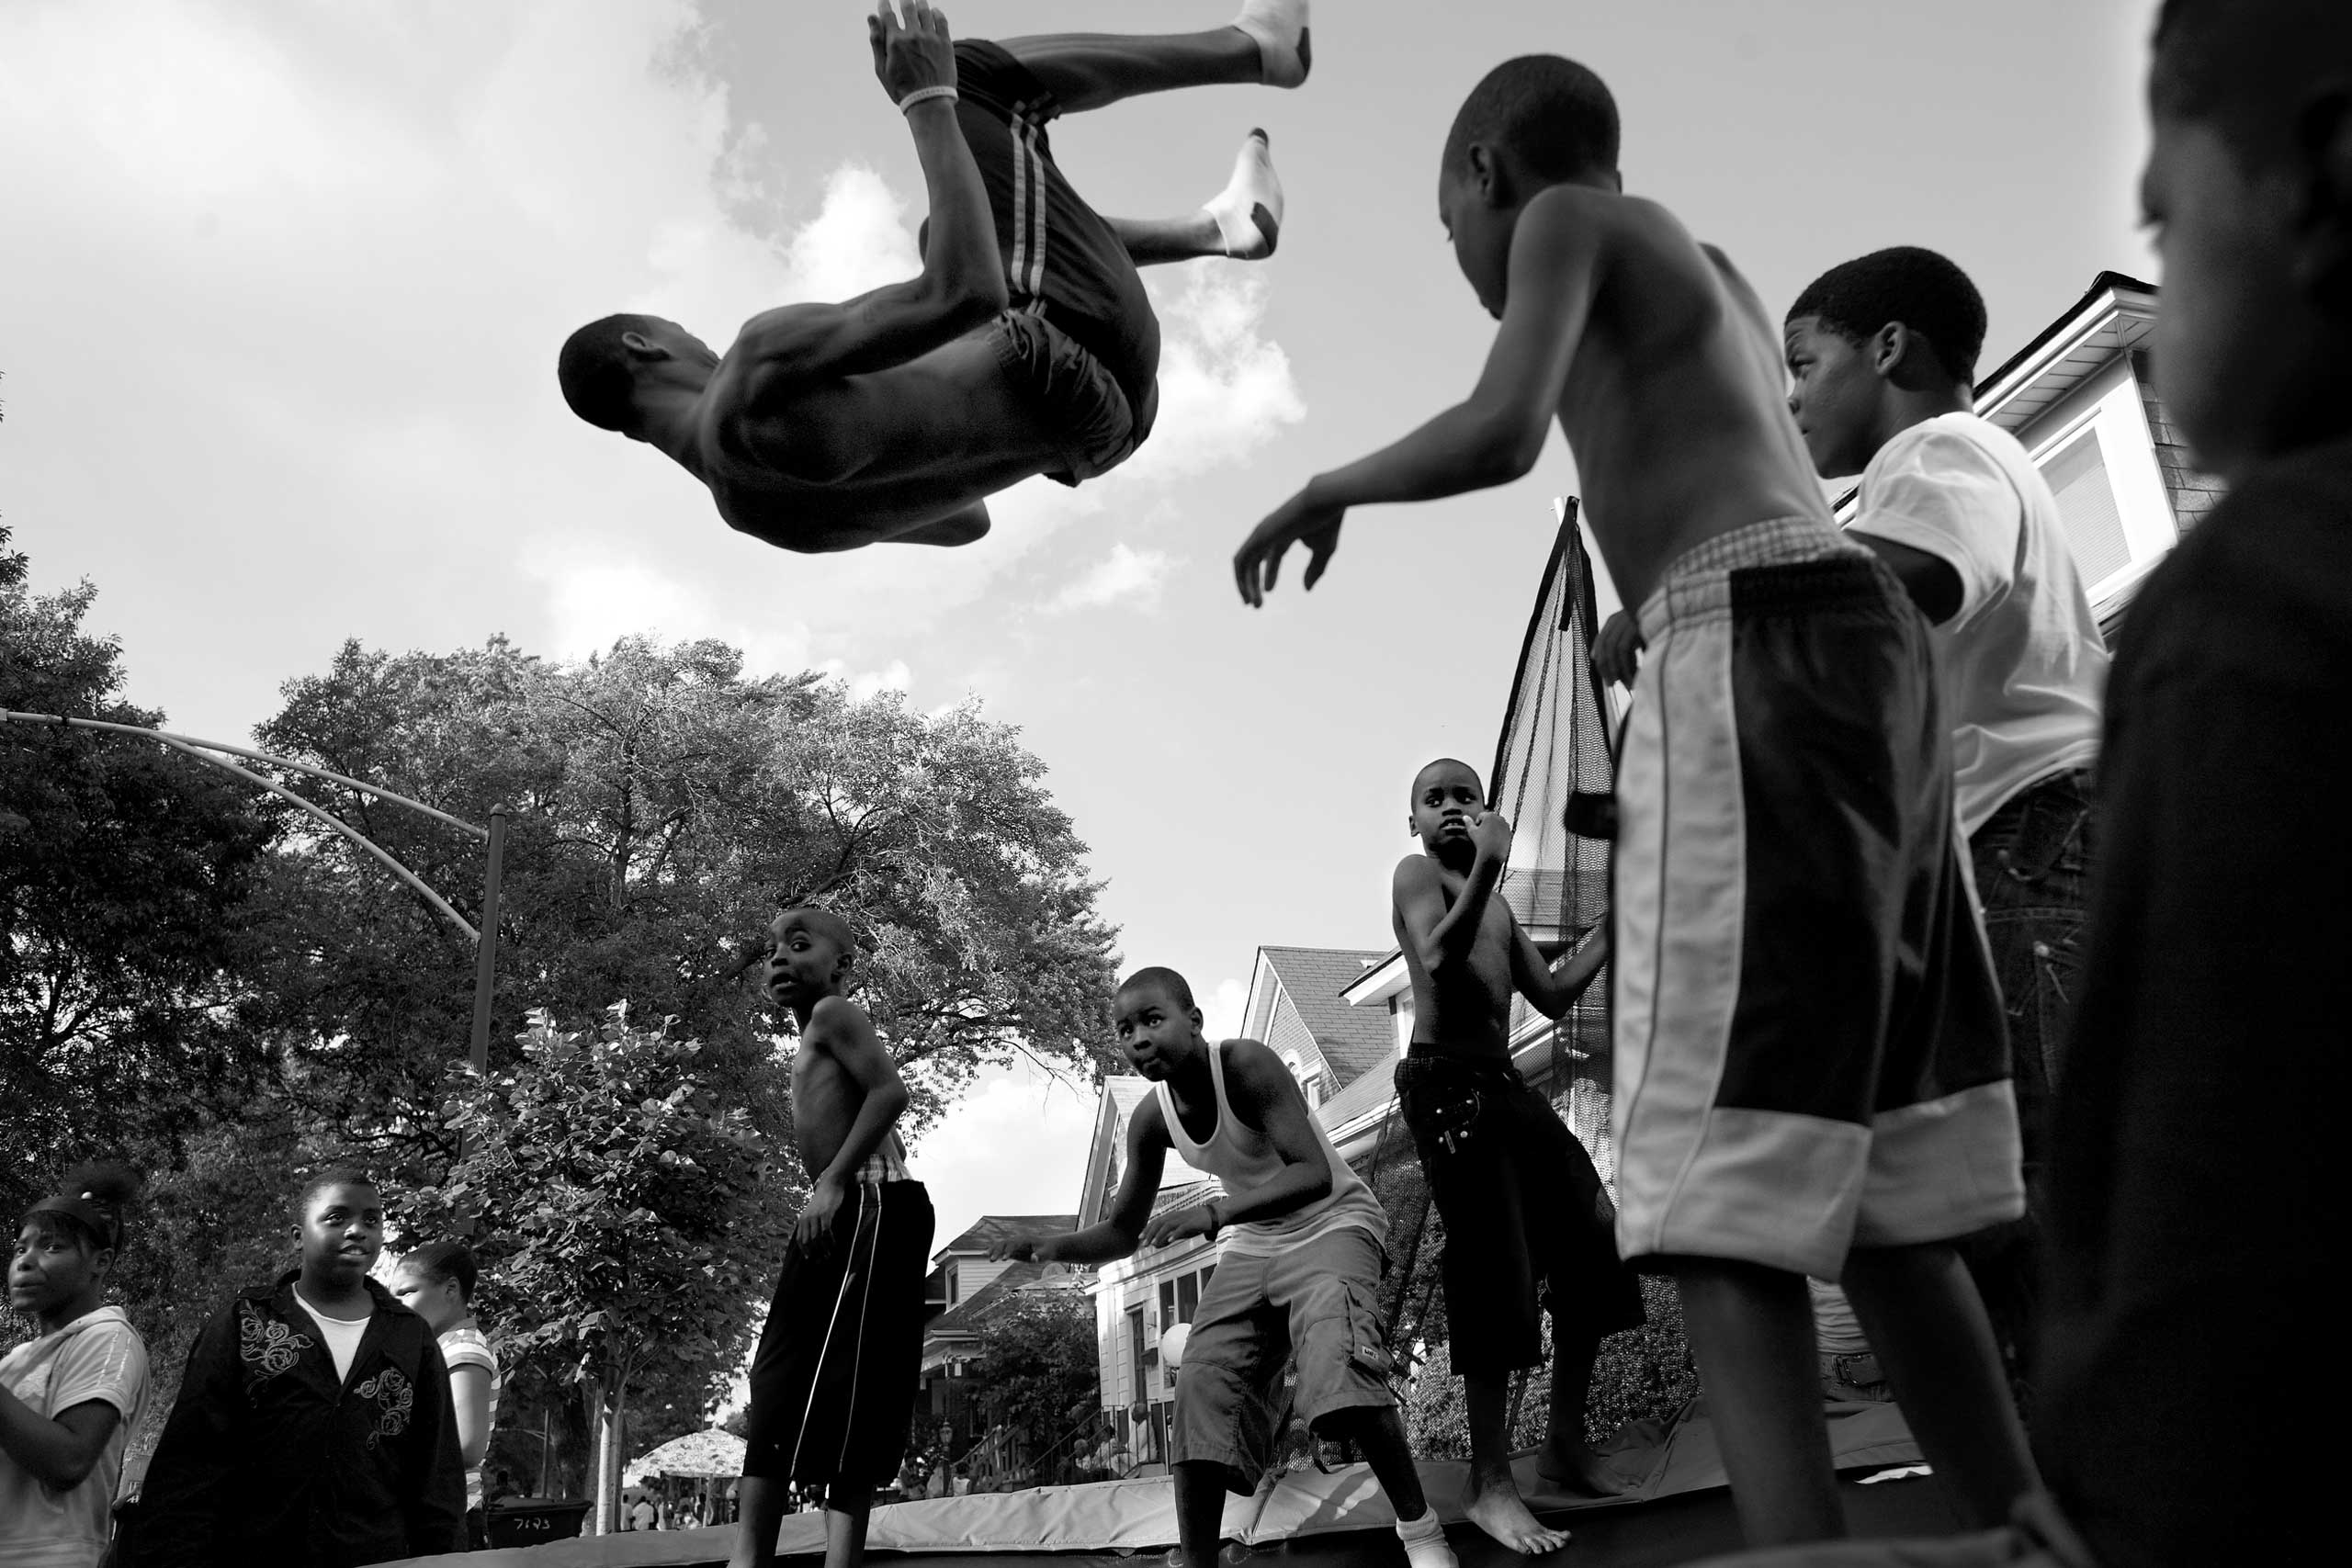 Kids jump off a trampoline during a block party. Auburn Gresham, Chicago, 2013.